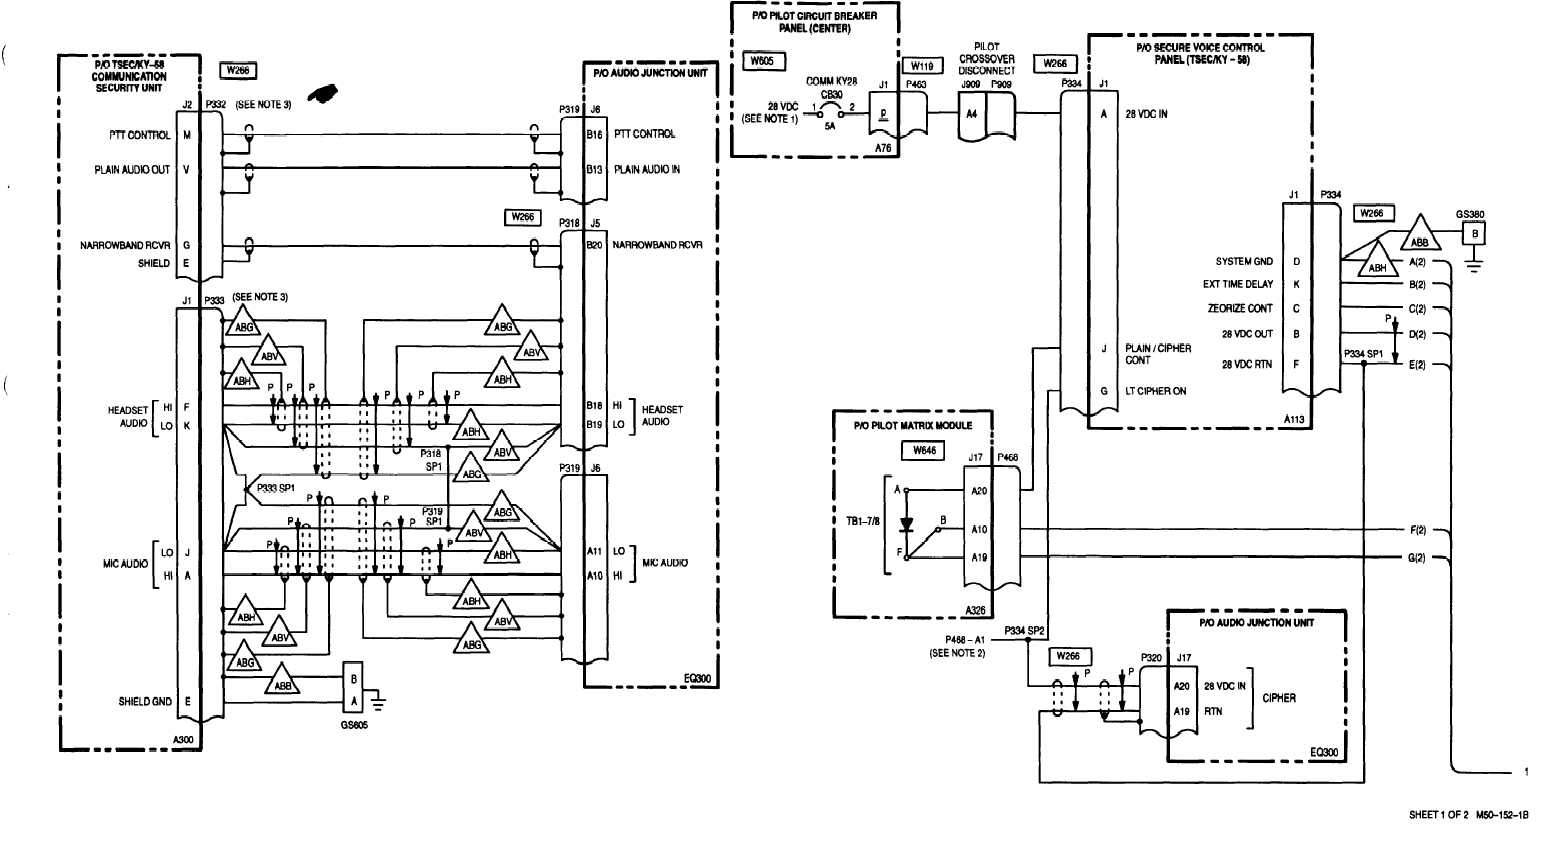 TSEC/KY-58 COMMUNICATION SECURlTY EQUIPMENT - WIRING DIAGRAM 6-2 Change 6  6-7